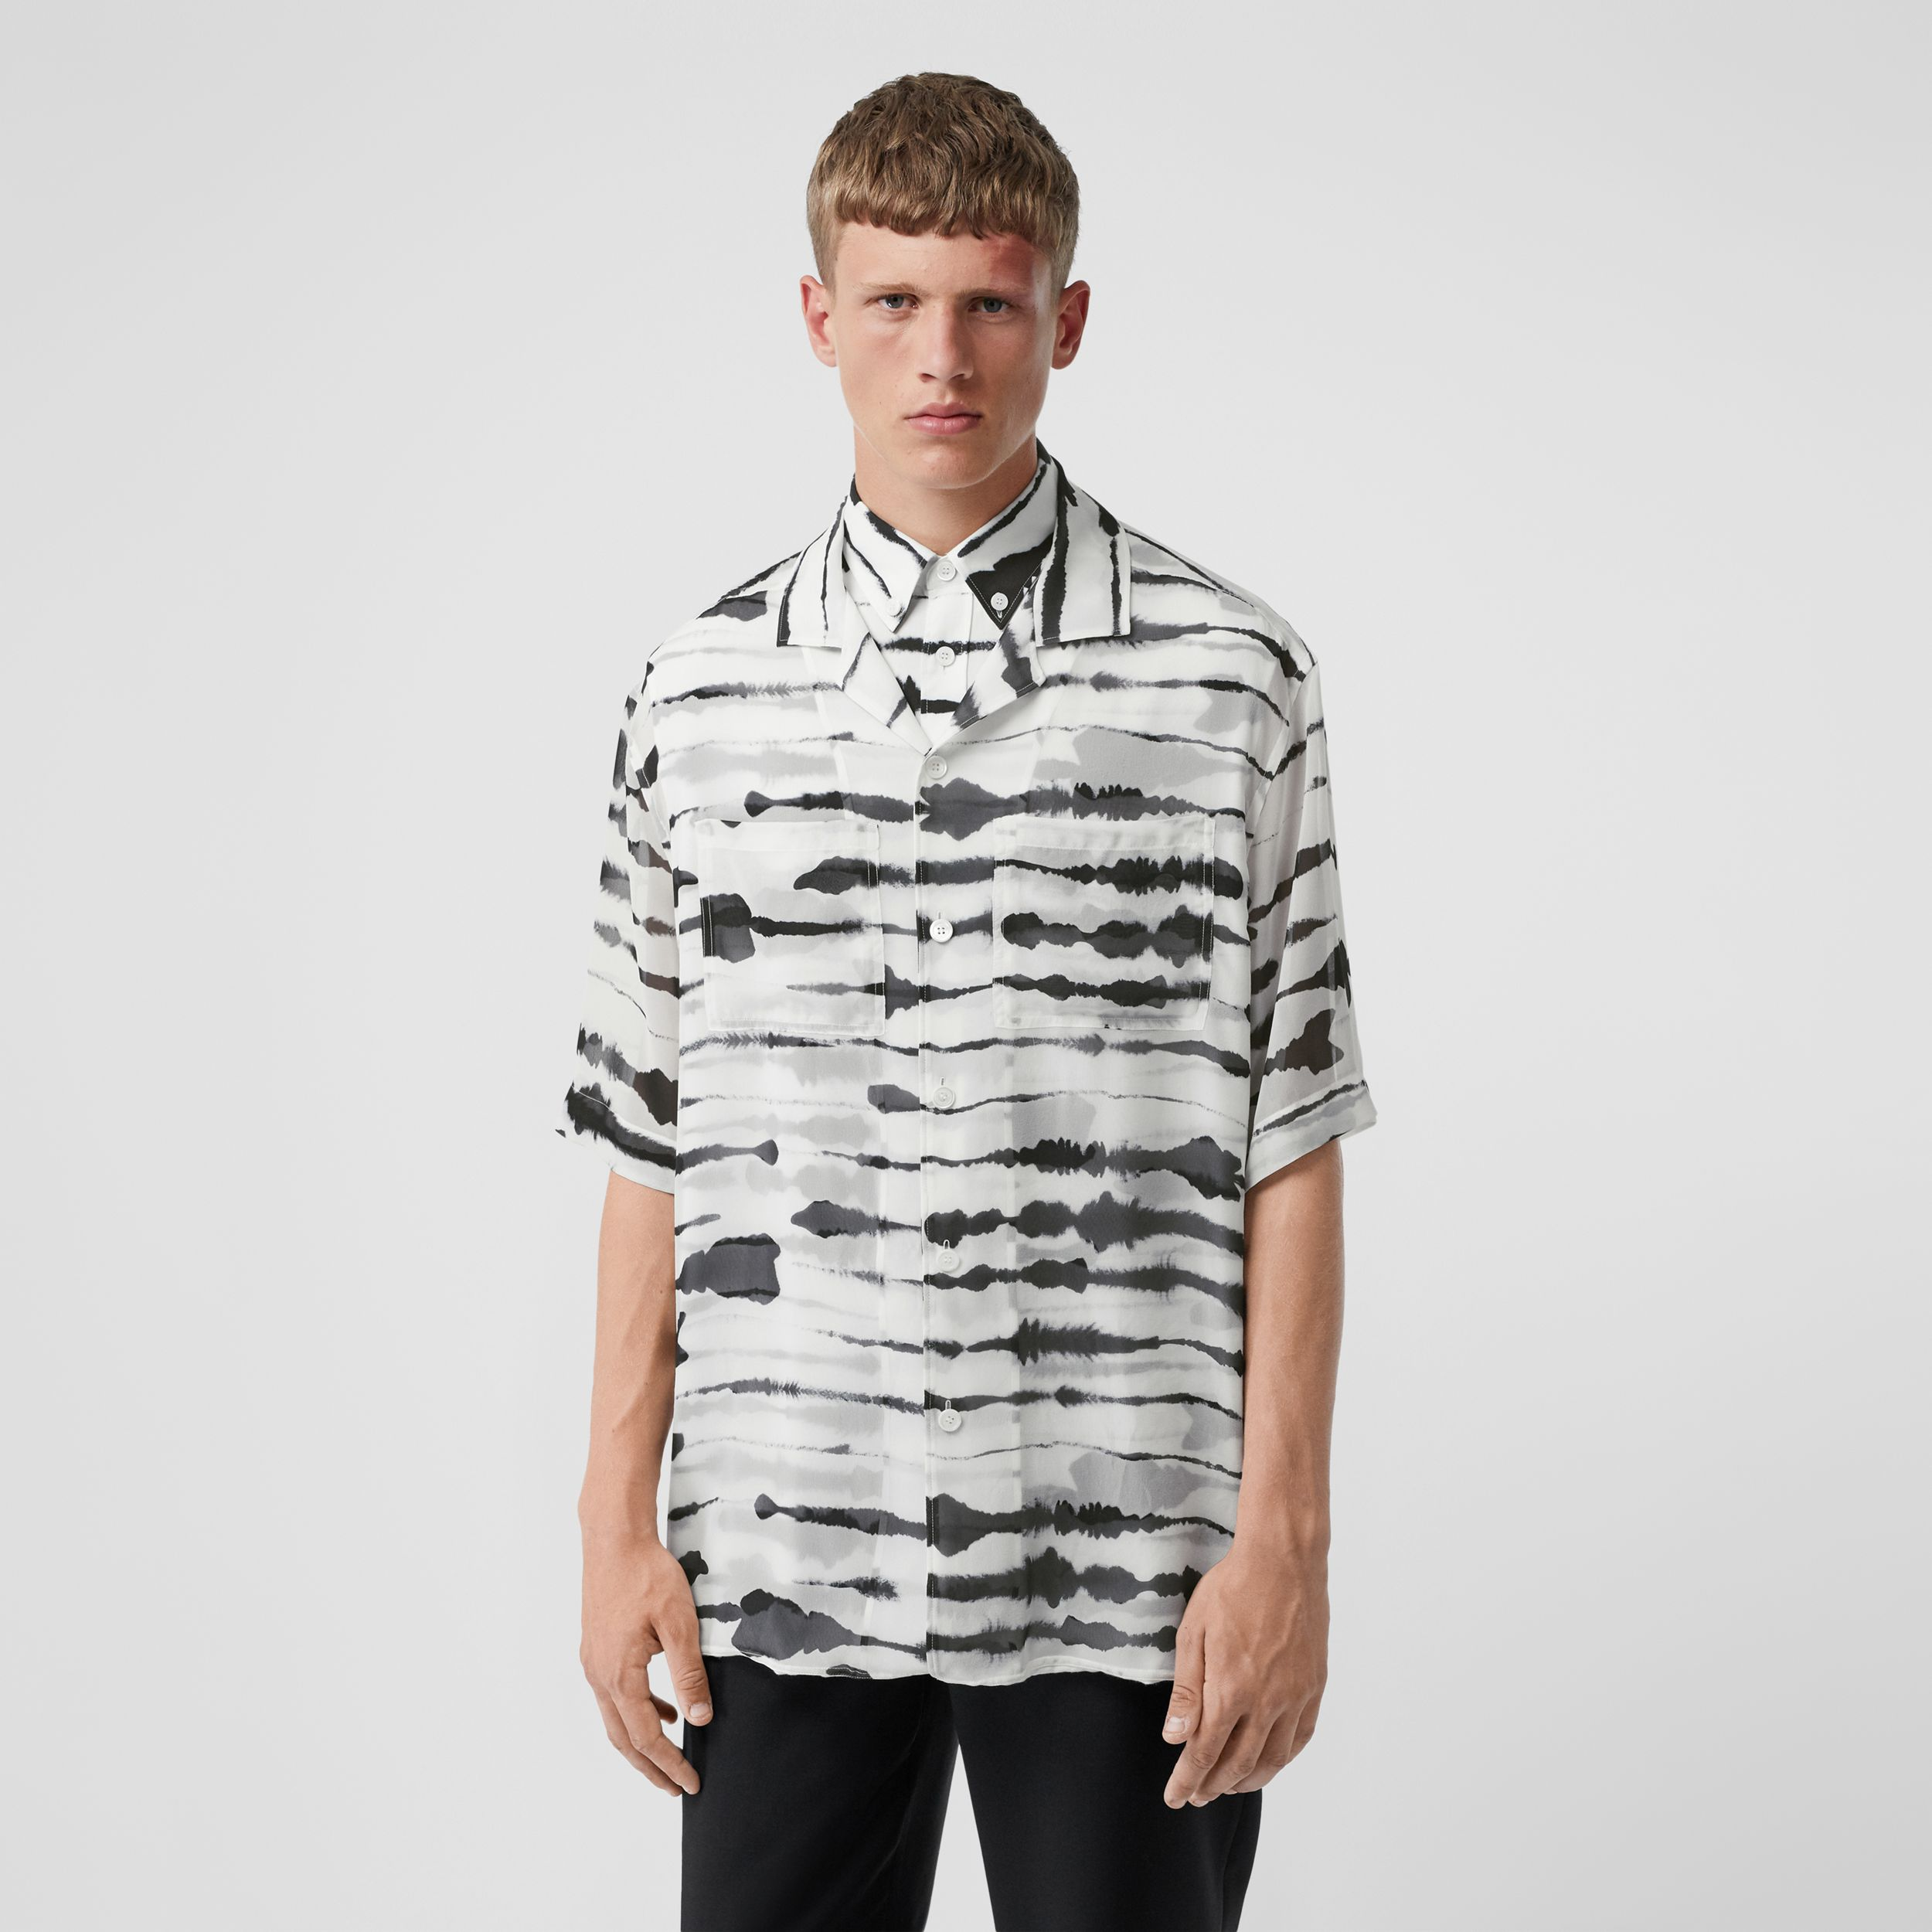 Short-sleeve Silk Overlay Watercolour Print Twill Shirt in Monochrome | Burberry - 1